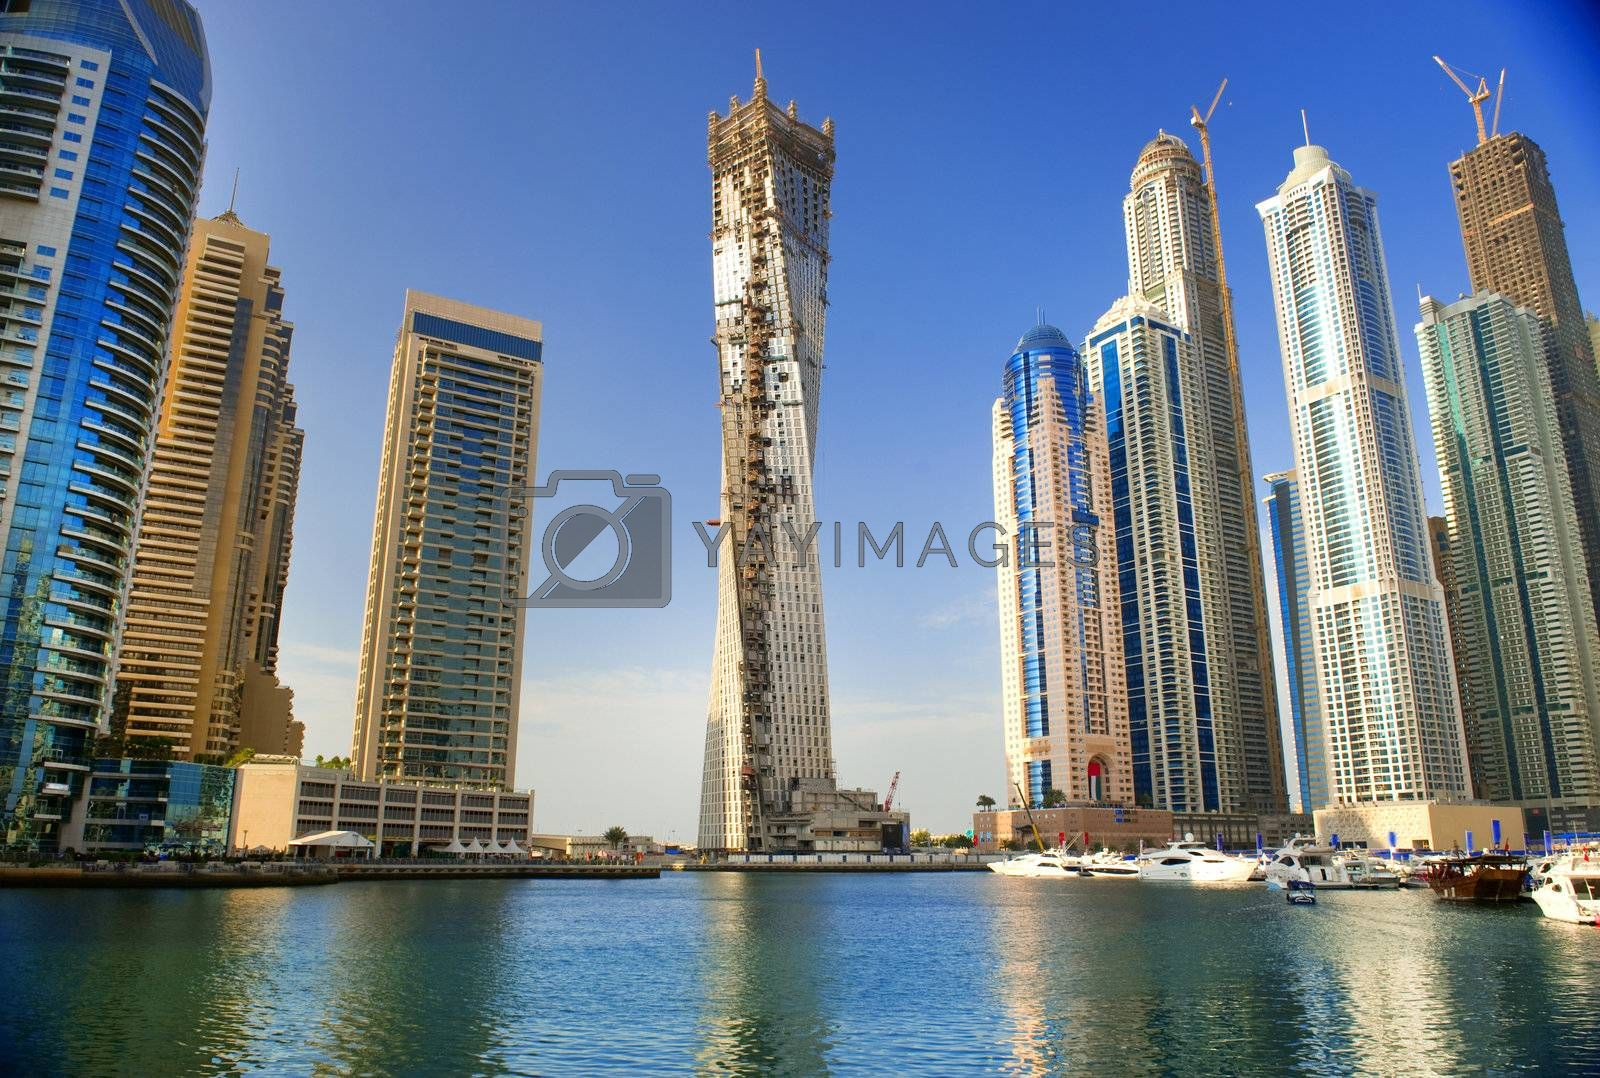 DUBAI, UAE - NOVEMBER 29: View at modern skyscrapers in Dubai Marina on November 29, 2011 in Dubai, UAE. Dubai Marina is a canal city, carved along 3 km stretch of Persian Gulf shoreline.